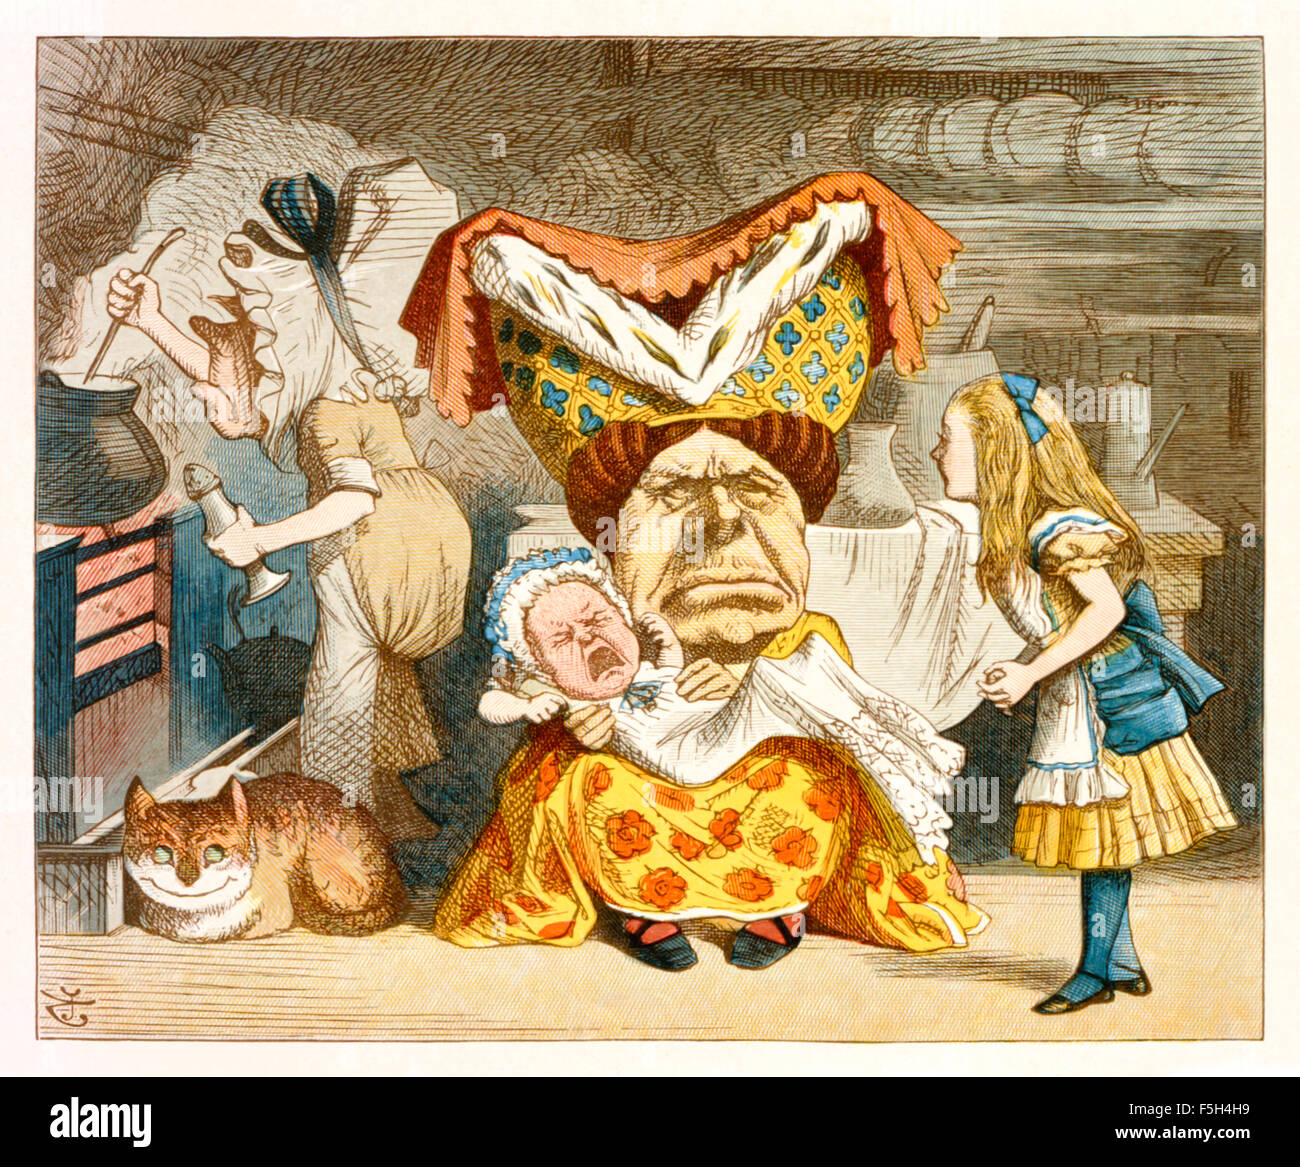 "The Duchess with the Pig-Baby from 'The Nursery ""Alice'', an shortened adaptation of 'Alice's Adventures - Stock Image"